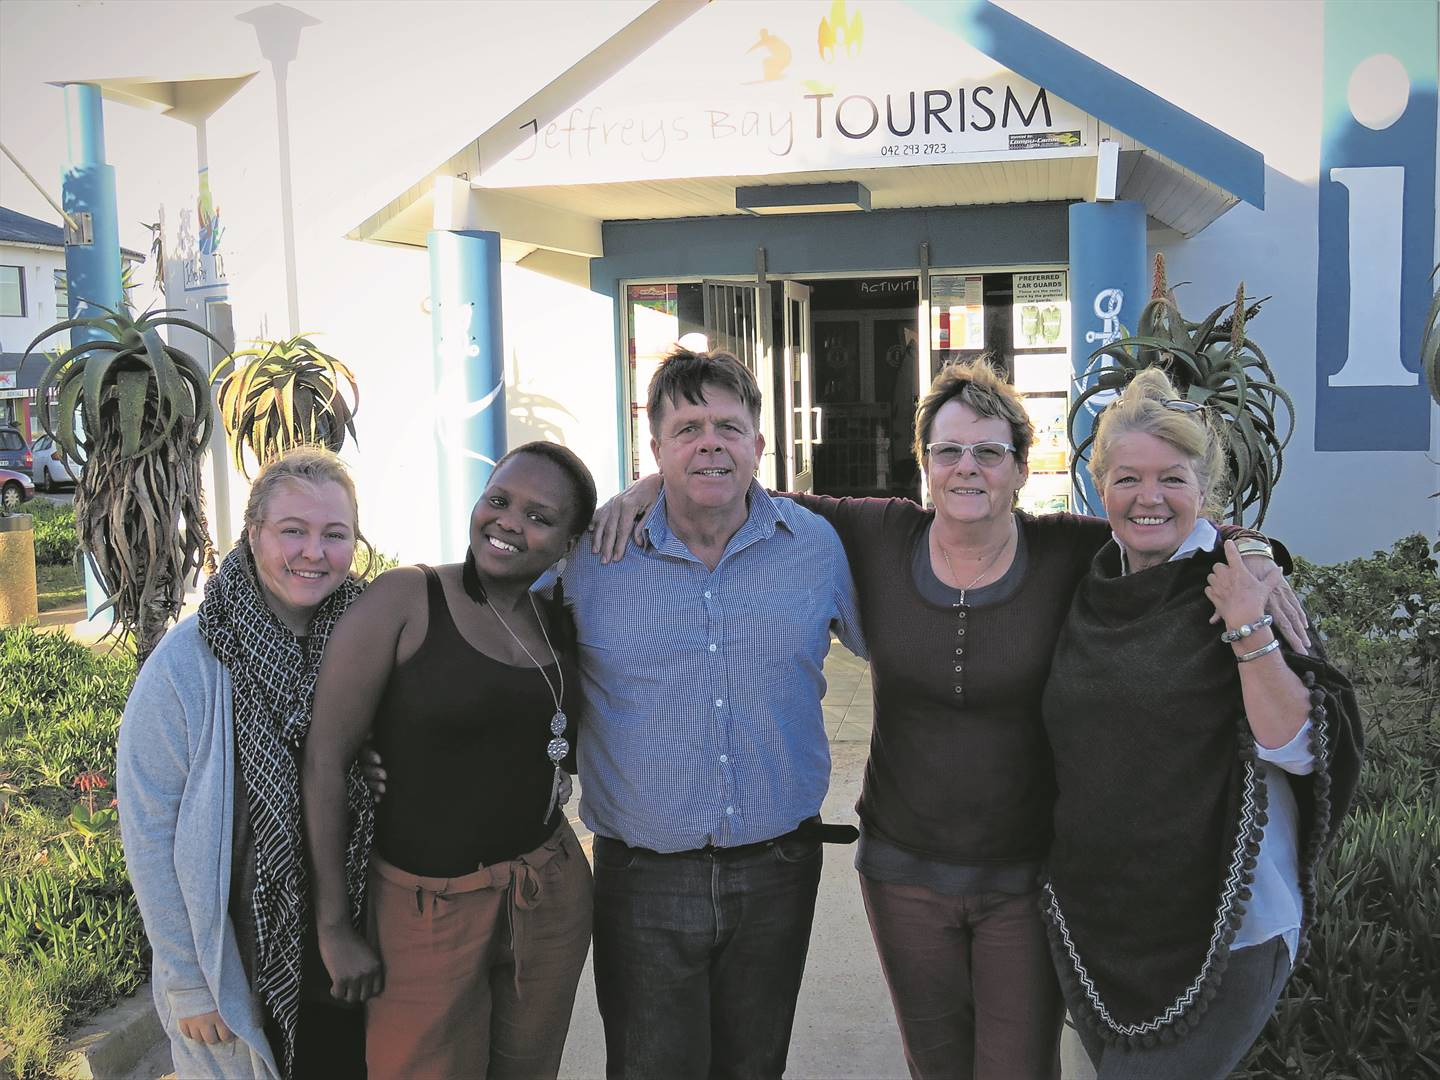 Marlé Mans, Chwayita Nkonyeni, Deon Freemantle (Chairperson), Nicky Kruger (Operational Manager) and Estelle de Beer (Marketing Manager) from the Jeffreys Bay Tourism are at the forefront in promoting the rich history, culture and heritage of Jeffreys Bay to the world. Photo:MONIQUE BASSON